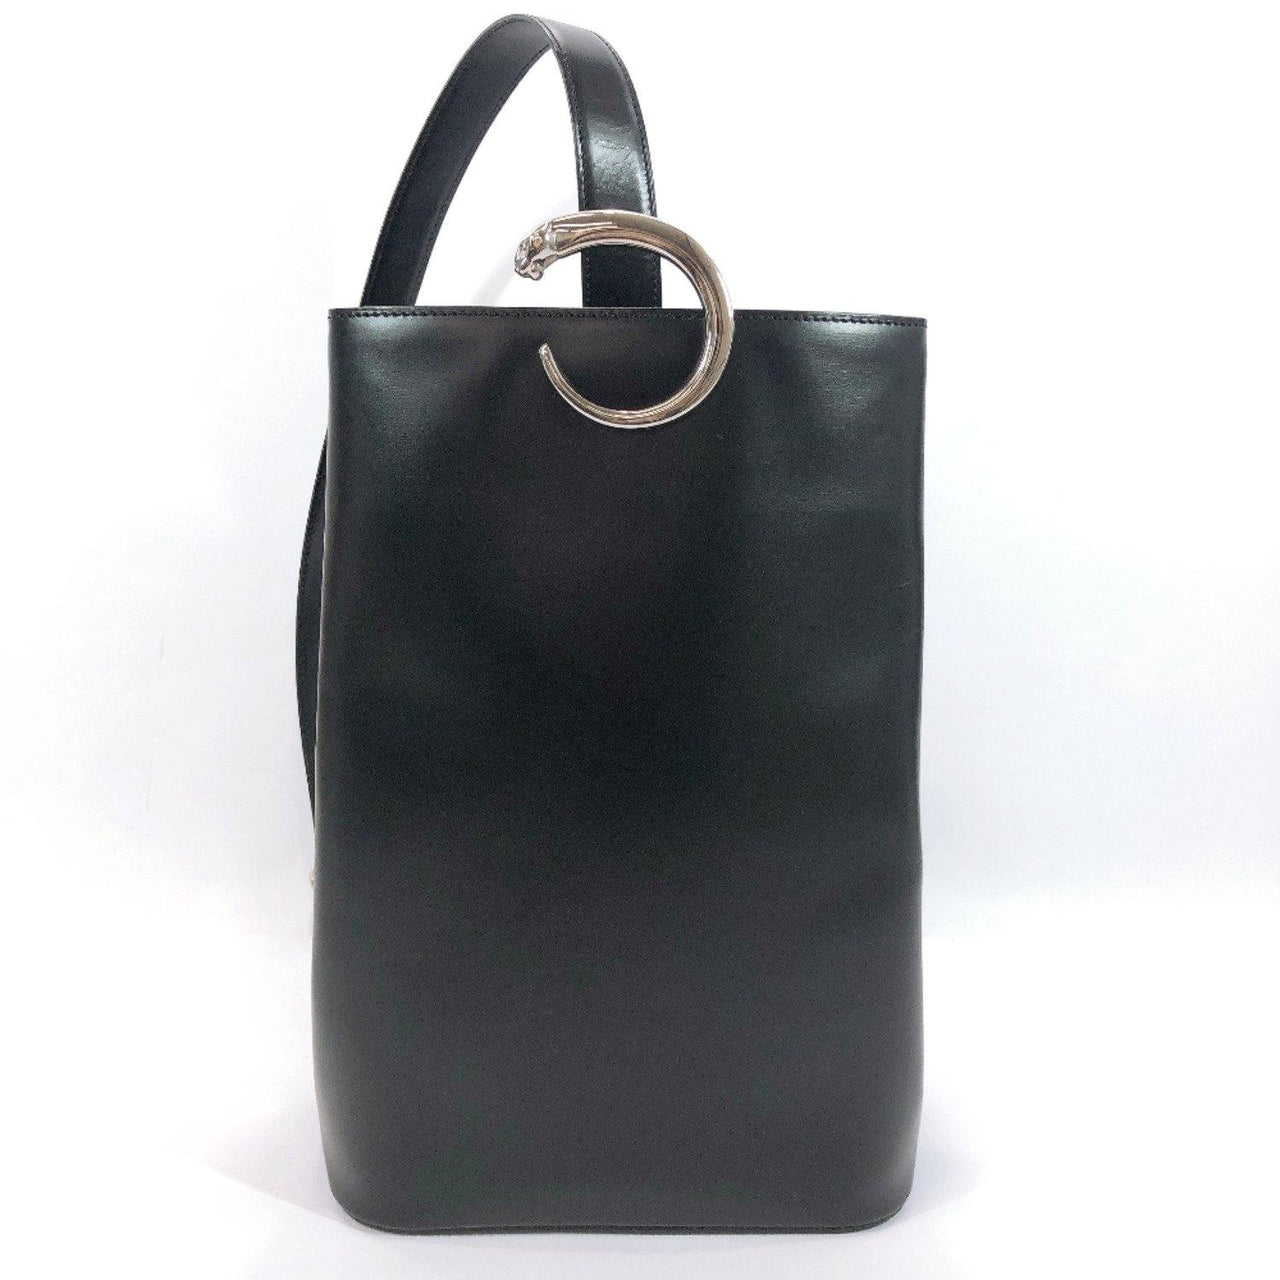 CARTIER Shoulder Bag PANTHERE Vintage leather black Women Used - JP-BRANDS.com